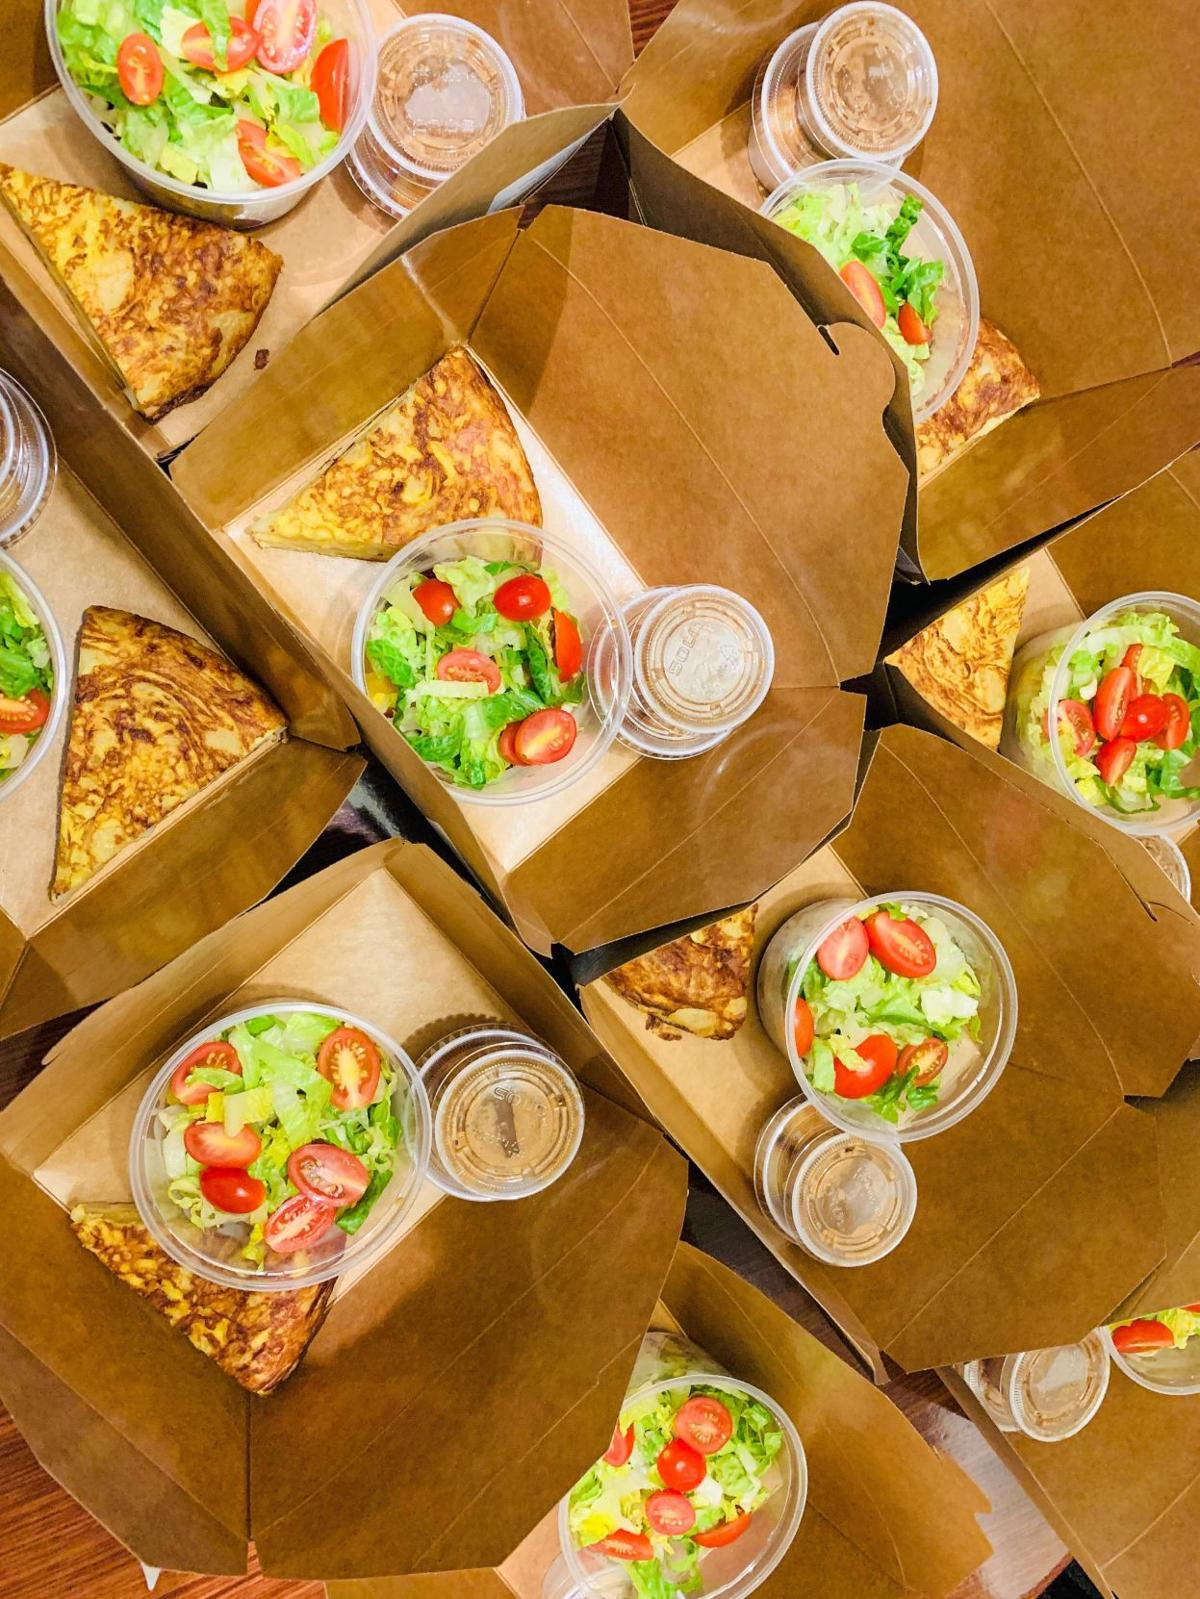 Stephen Fries: Eateries help support health care workers